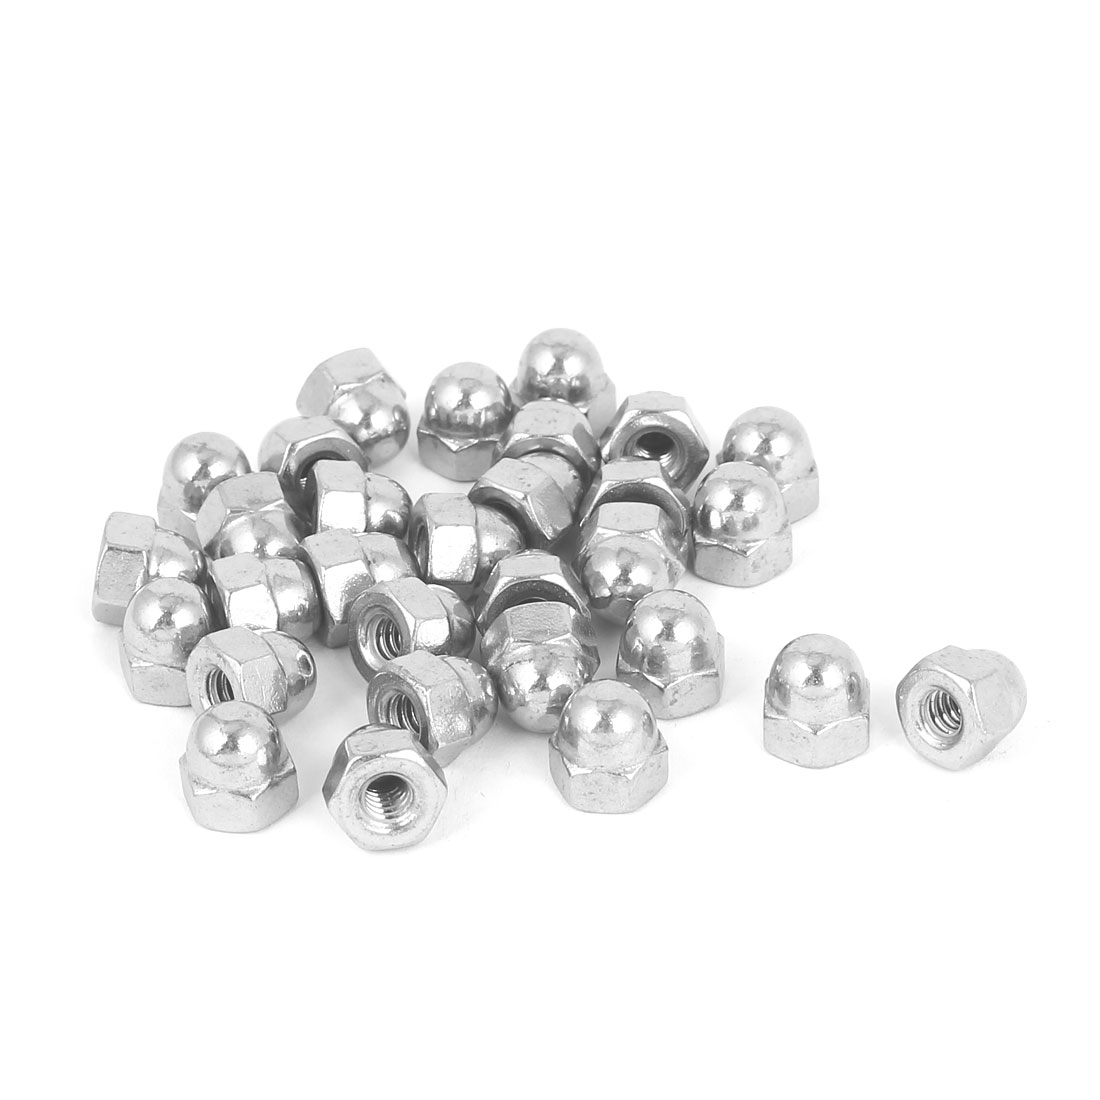 10#-24 304 Stainless Steel Dome Head Cap Hexagon Nuts Silver Tone 30pcs